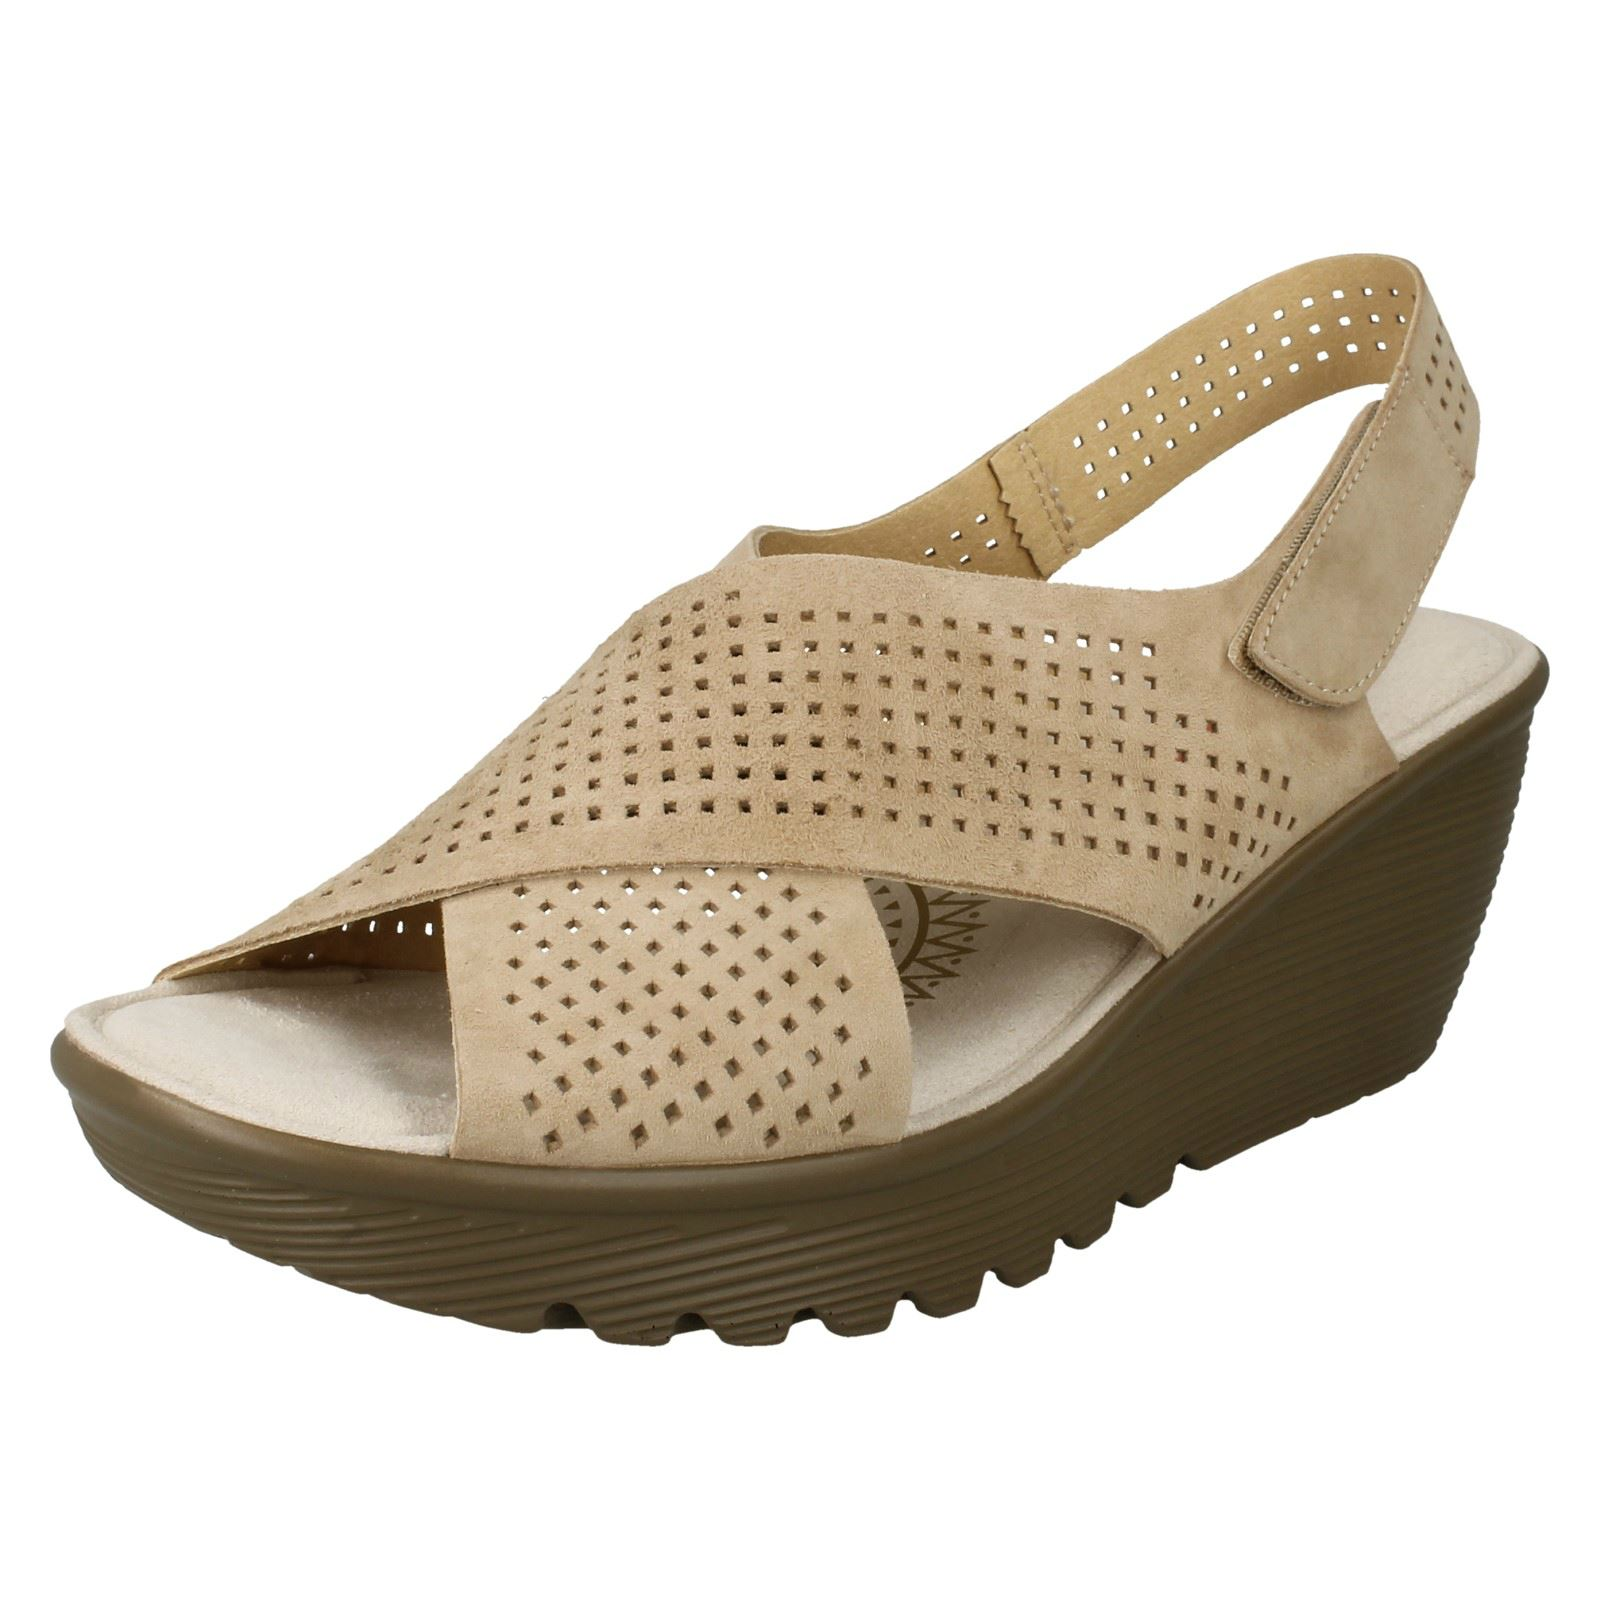 skechers open toe sandals